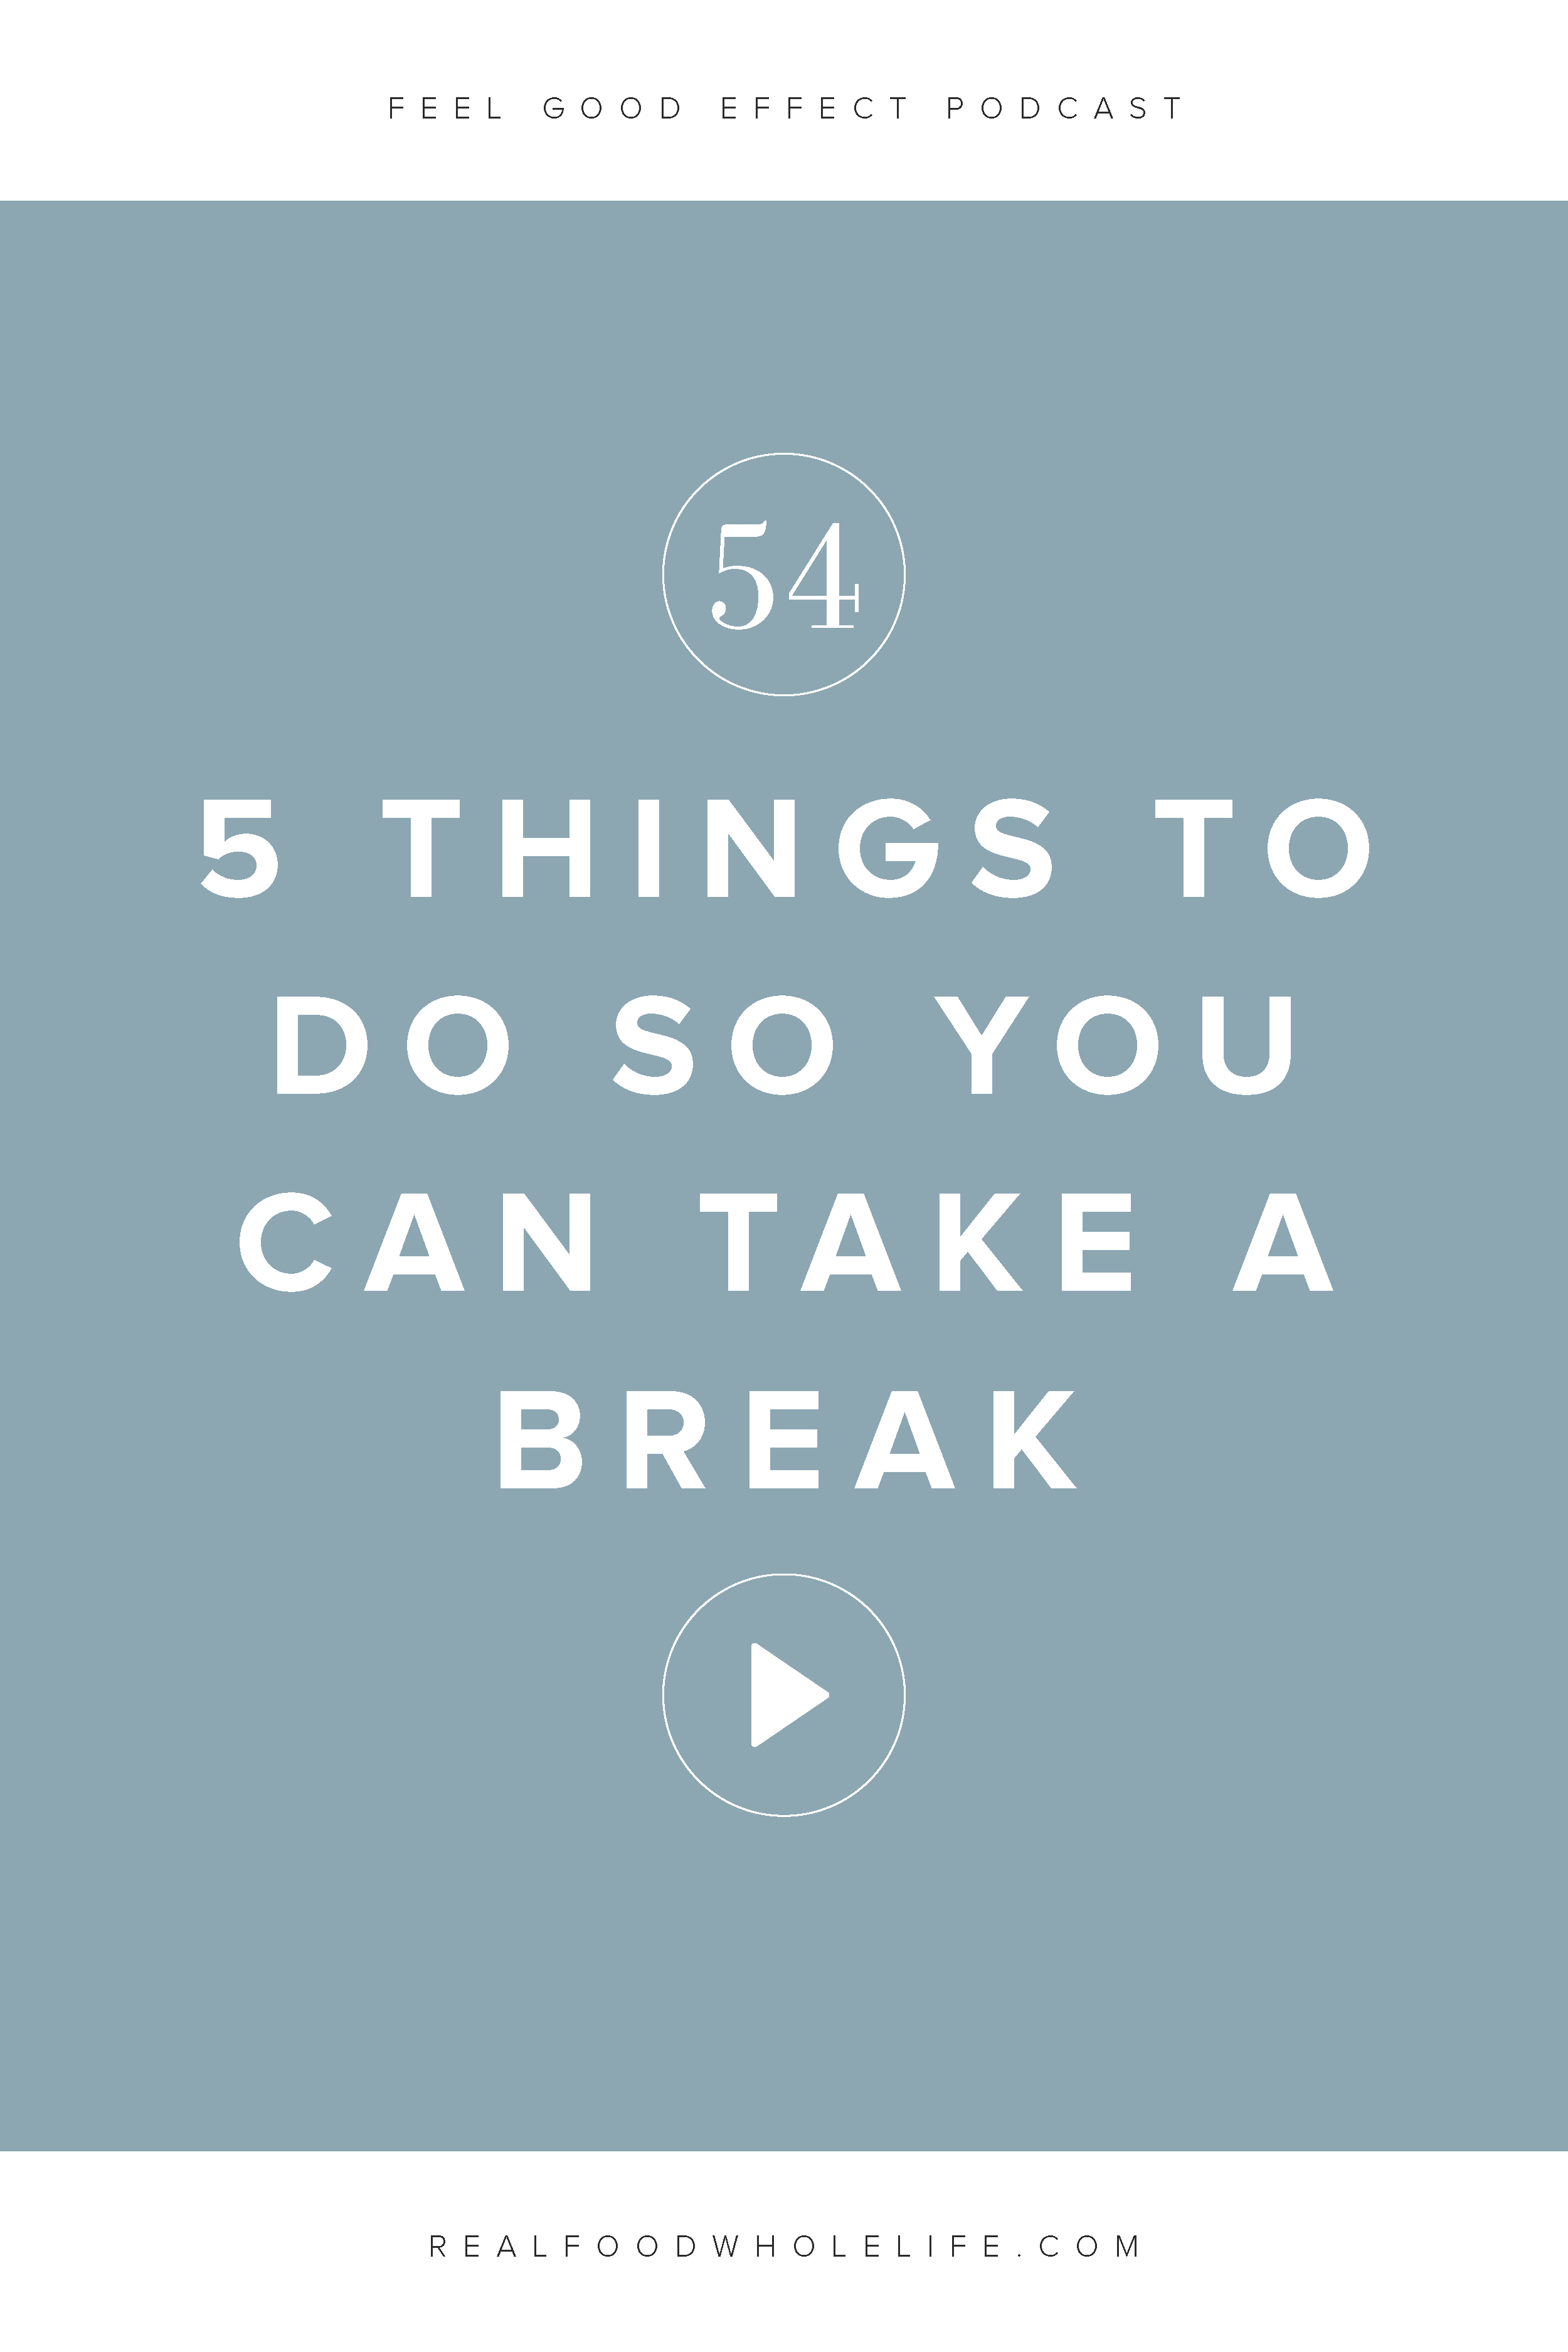 5 Things To Do So You Can Actually Take a Break, an episode from the Feel Good Effect podcast. #feelgoodeffect #wellnesspodcast #healthy #podcast #gentleisthenewperfect #realfoodwholelife